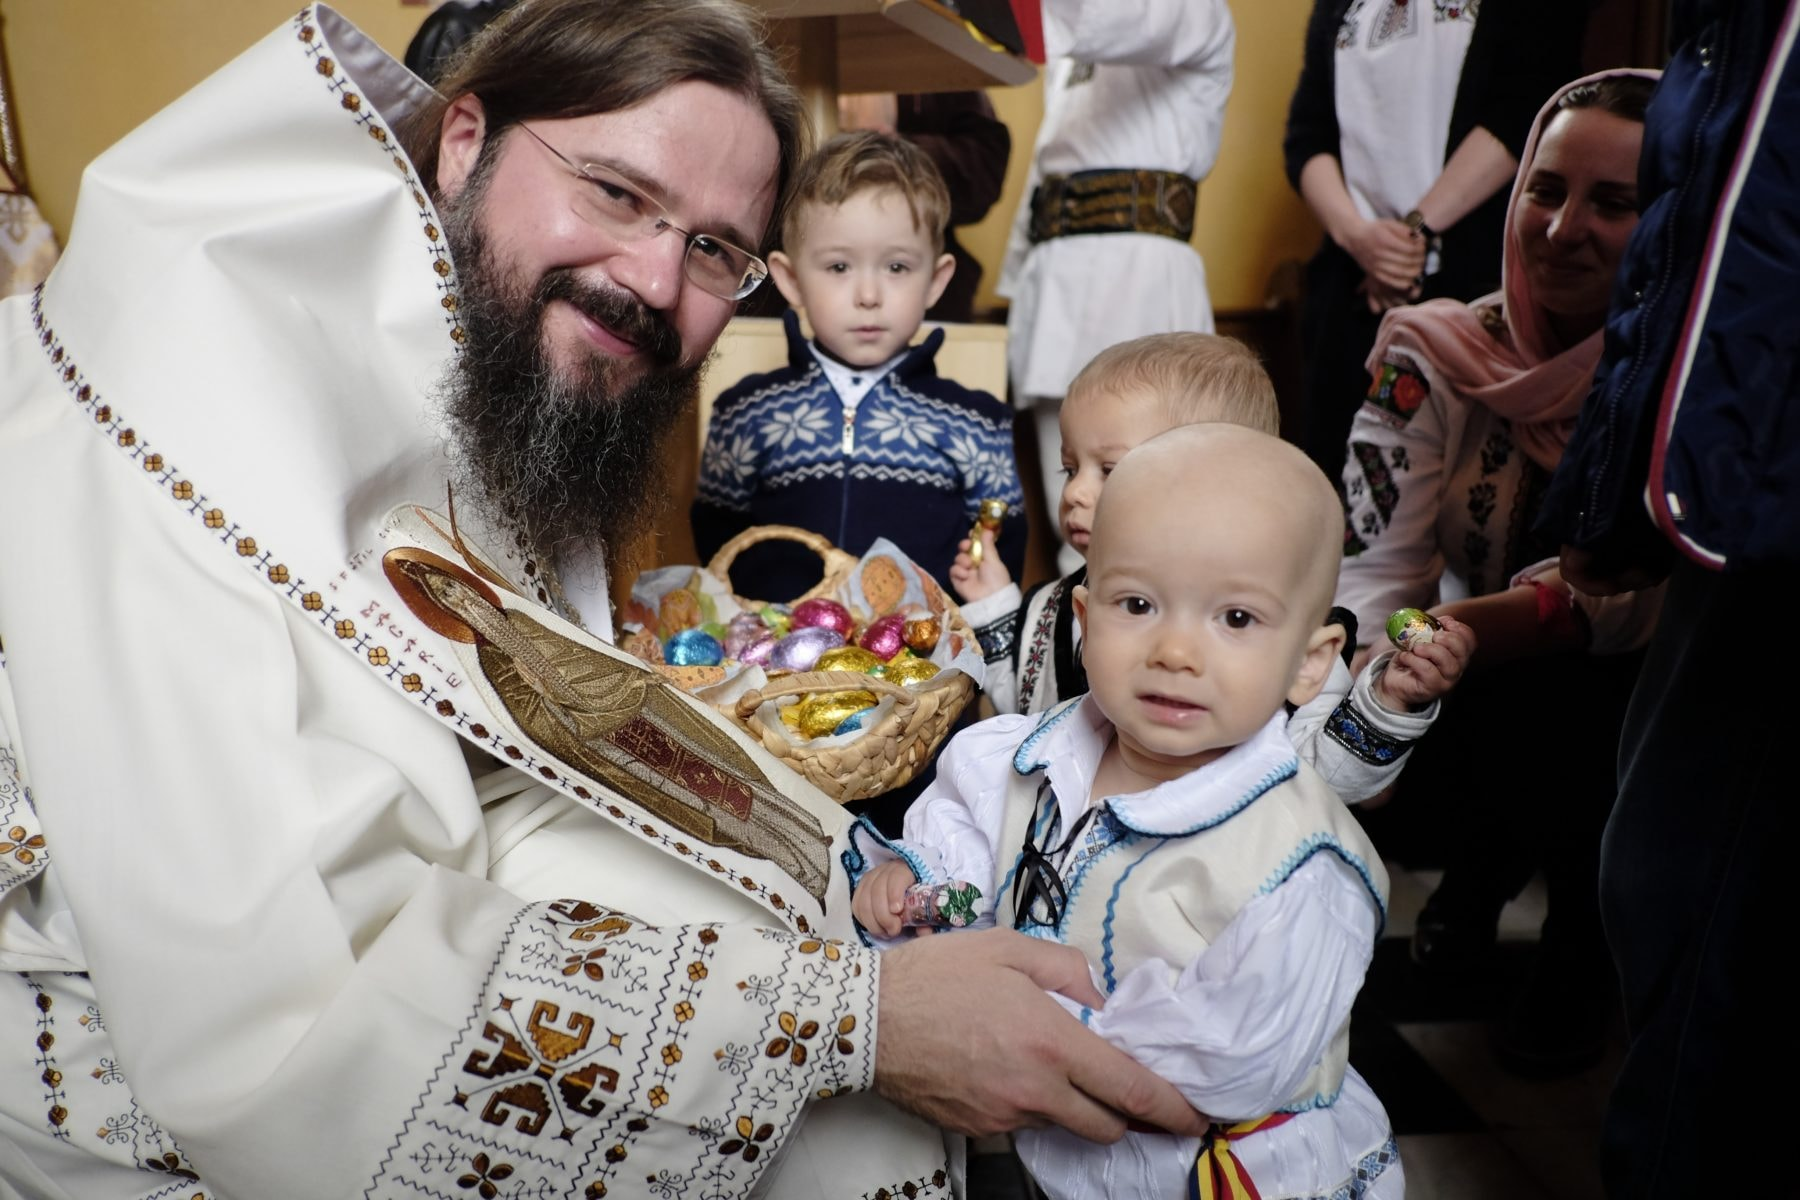 """His Grace Macarie of Northern Europe: """"Let's Have the Heart of a Child!"""" – Interview in the """"Orthodox Family"""" magazine, June 2018"""